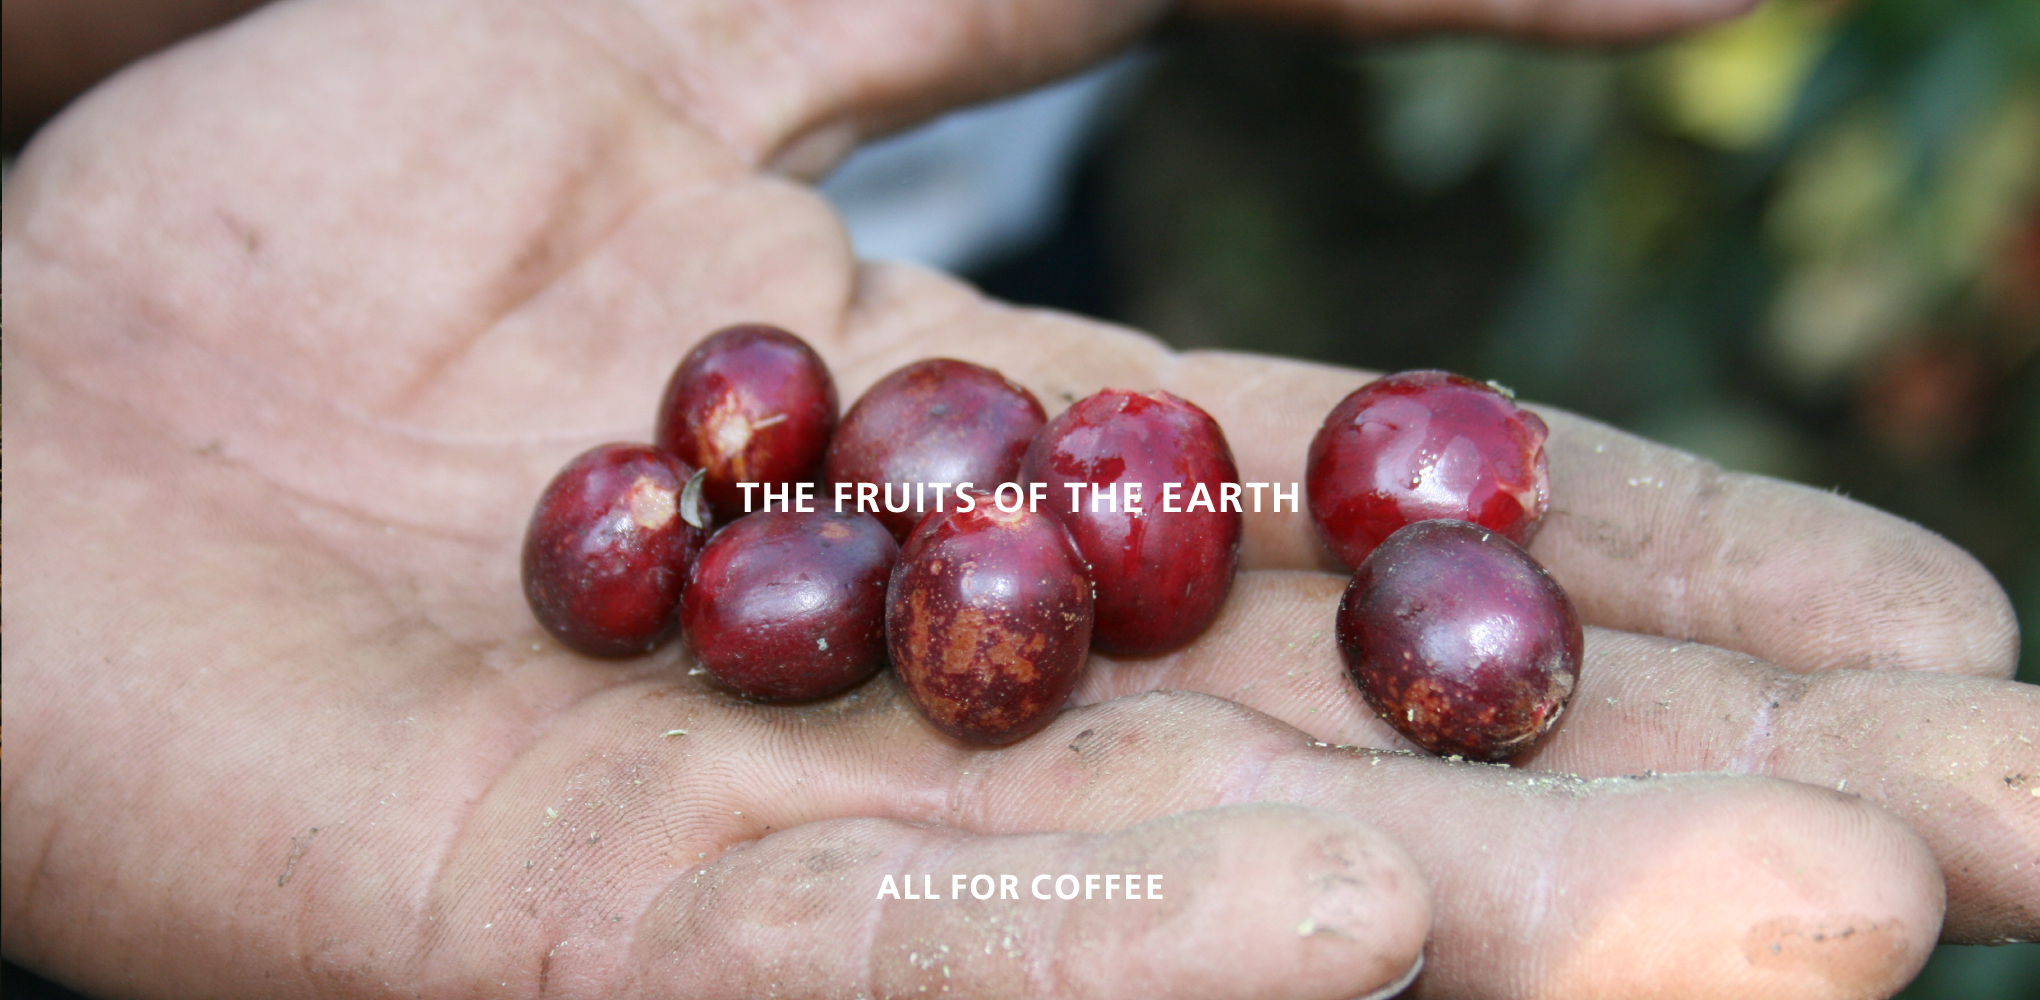 THE FRUITS OF THE EARTH